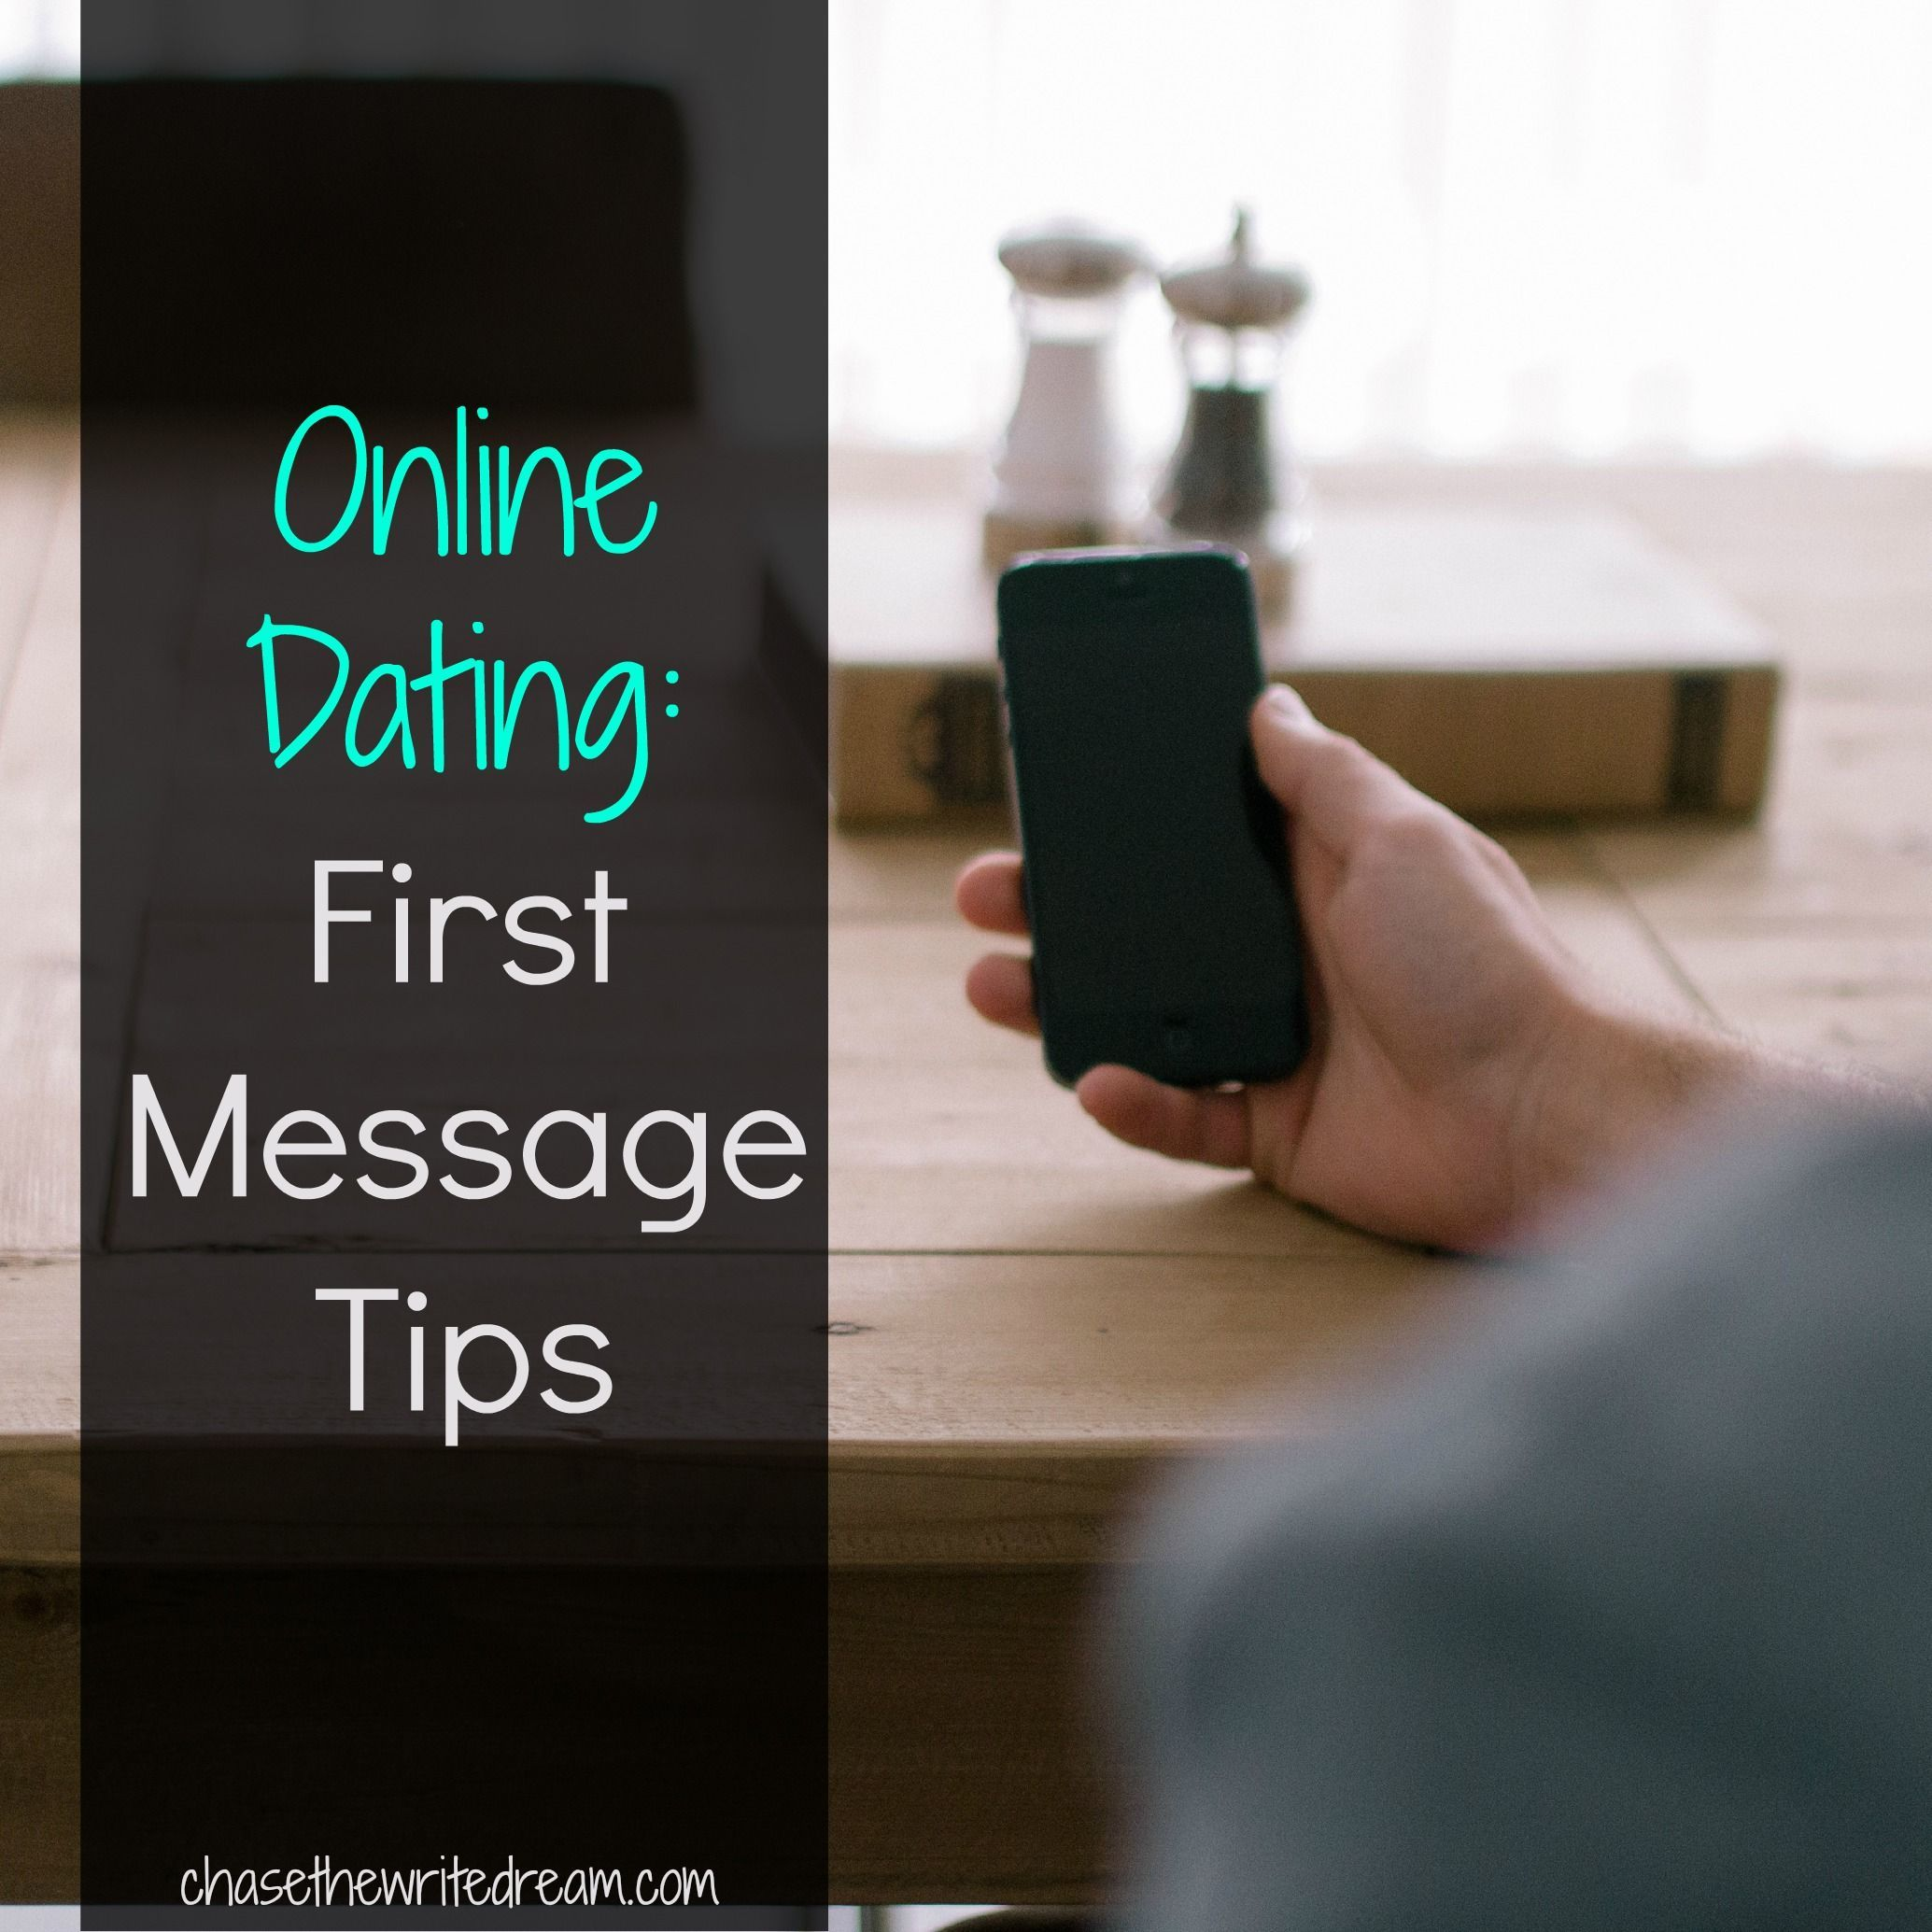 Tips for writing online dating messages